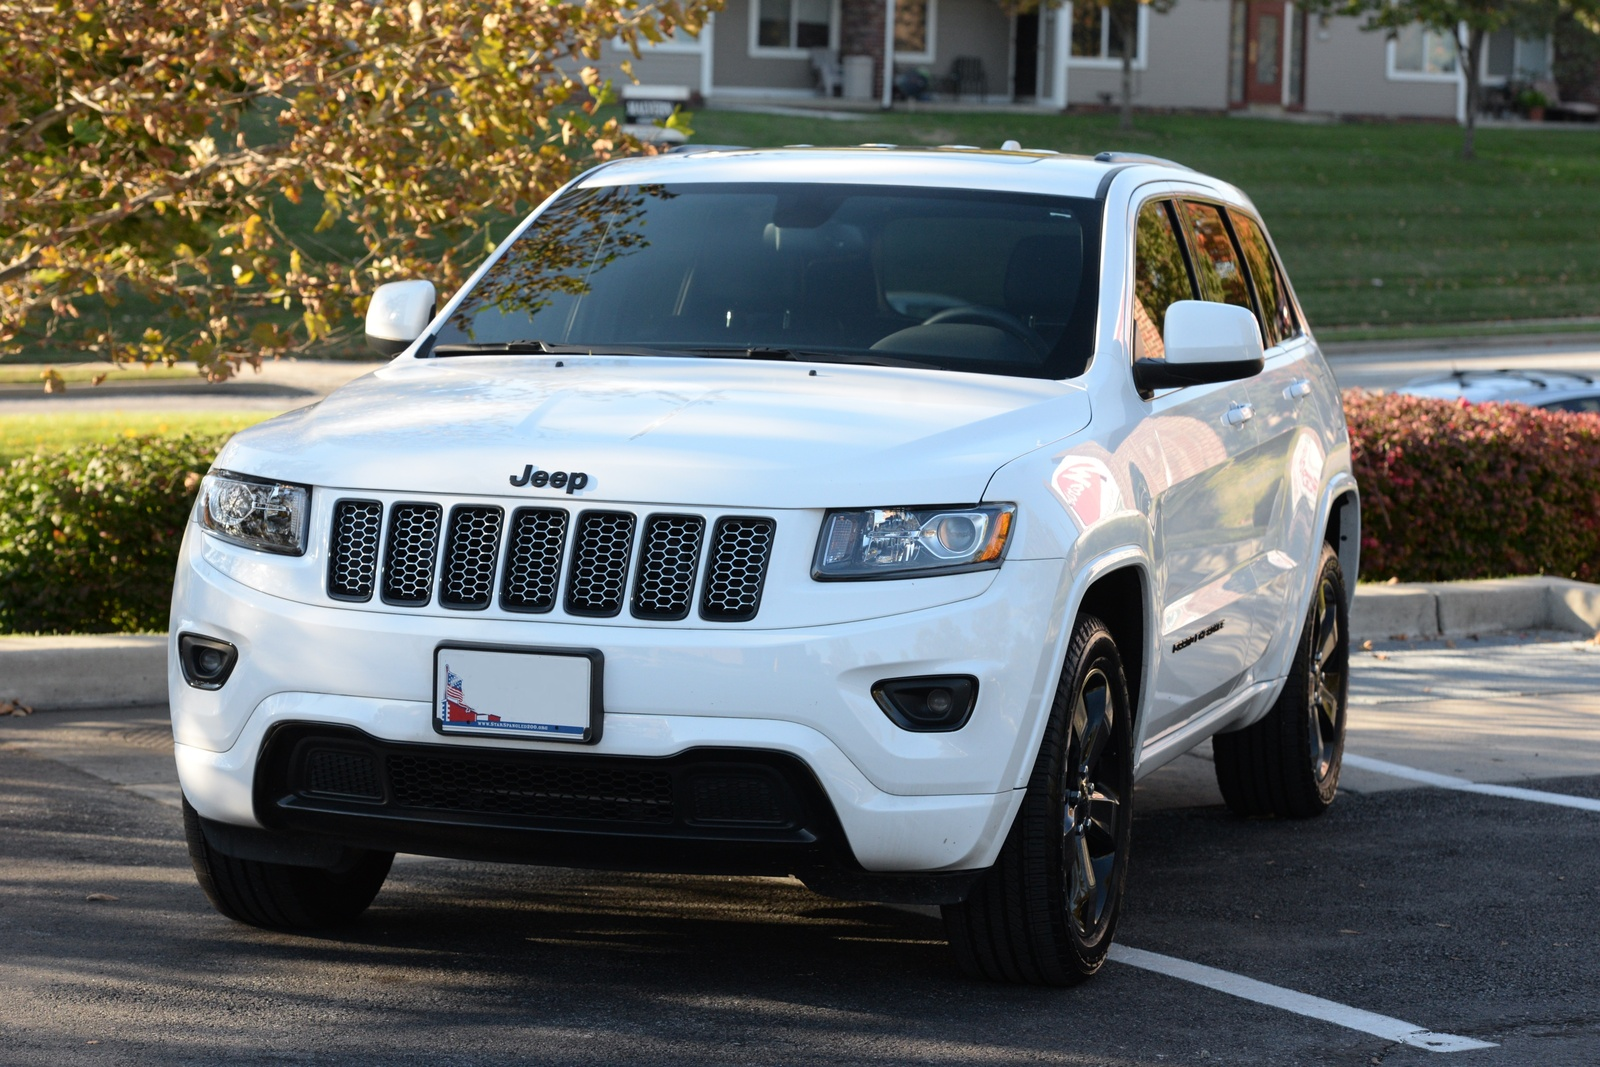 2016 jeep grand cherokee for sale in florida massey yardley jeep finder car photos. Black Bedroom Furniture Sets. Home Design Ideas